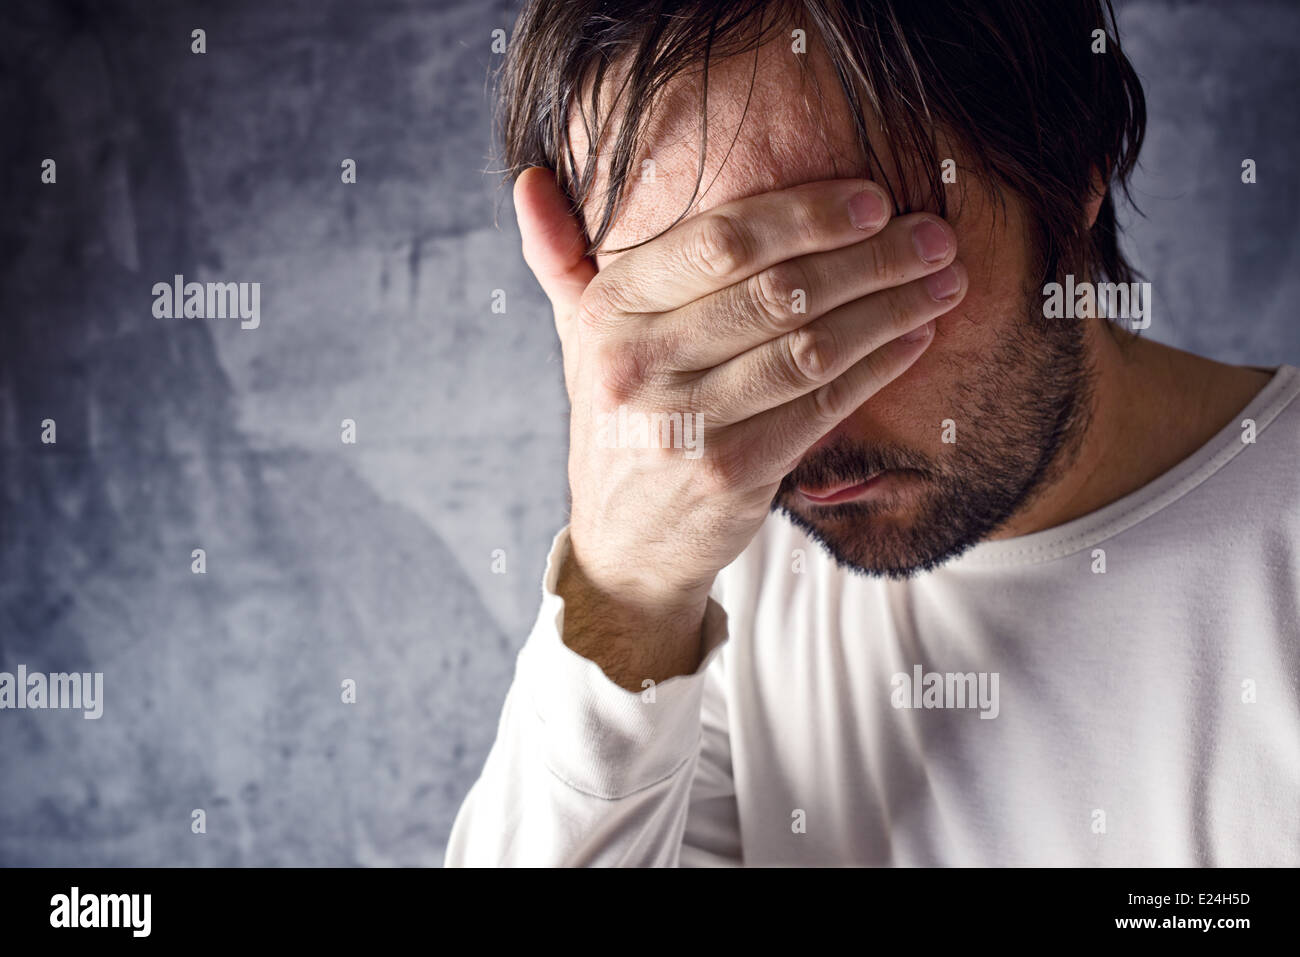 Depressive man crying with hand covering his face, looking upset and showing remorse - Stock Image